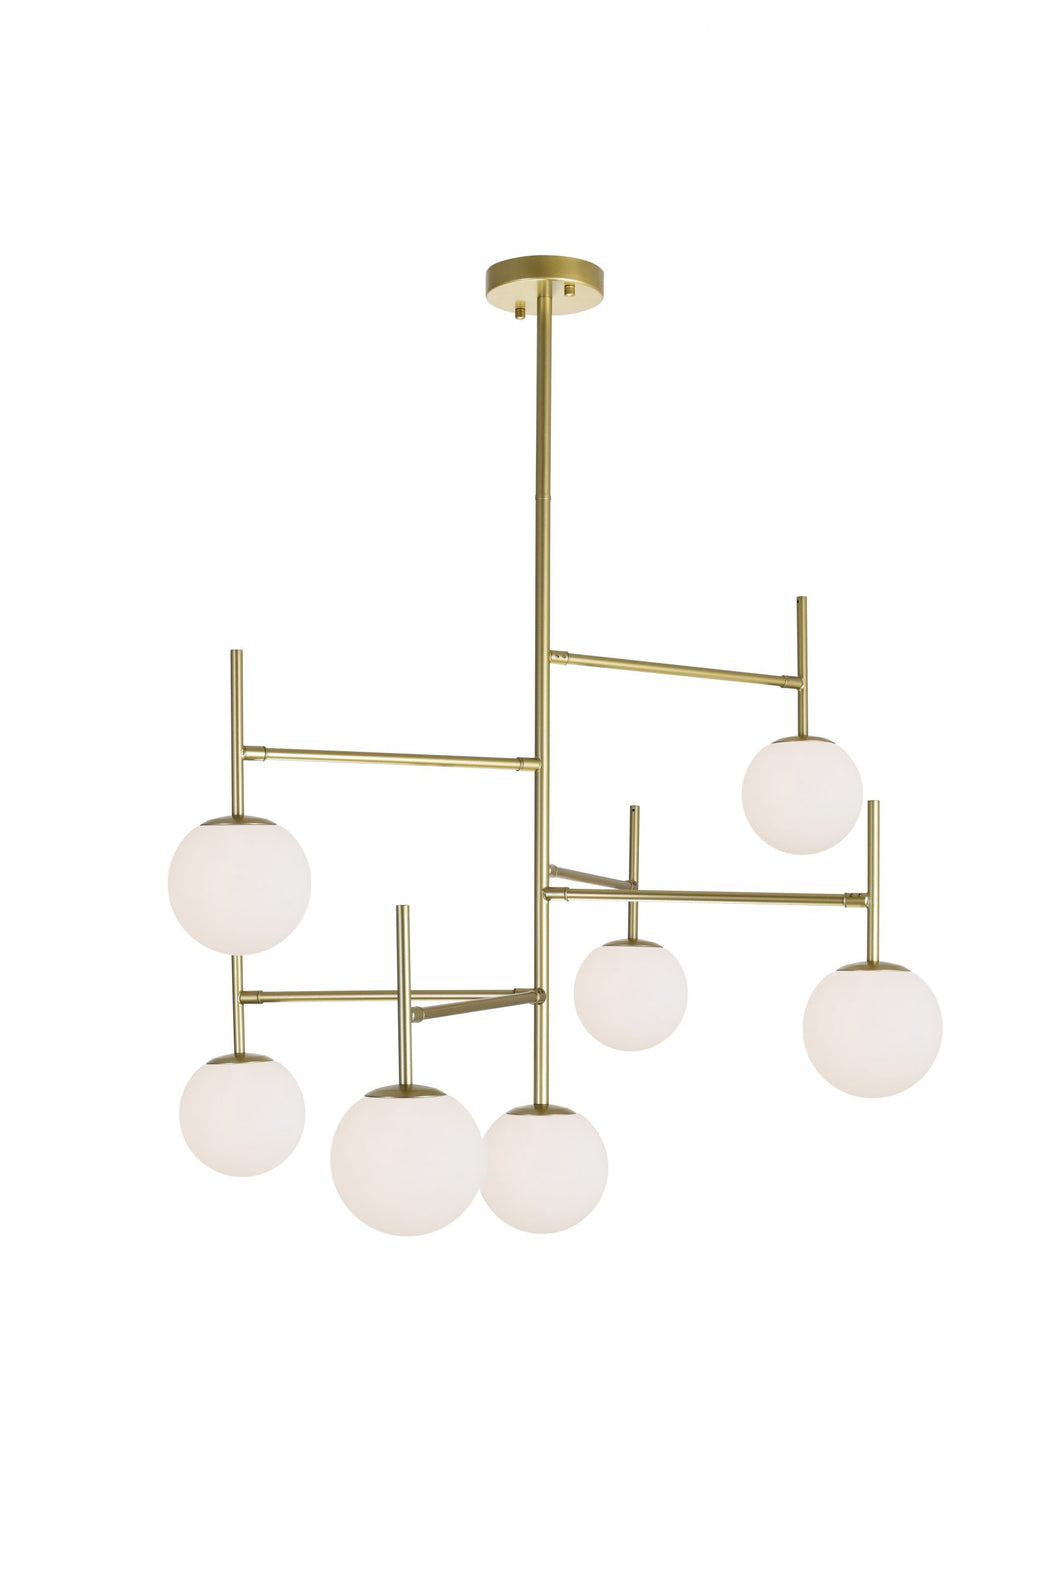 7 LIGHT CHANDELIER WITH MEDALLION GOLD FINISH - Dream art Gallery